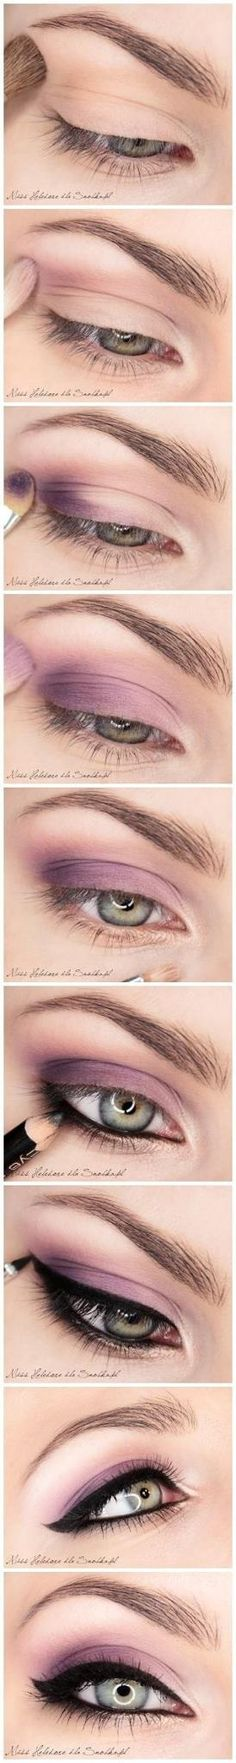 purple smokey eye-- could be adjusted easily for daytime wear